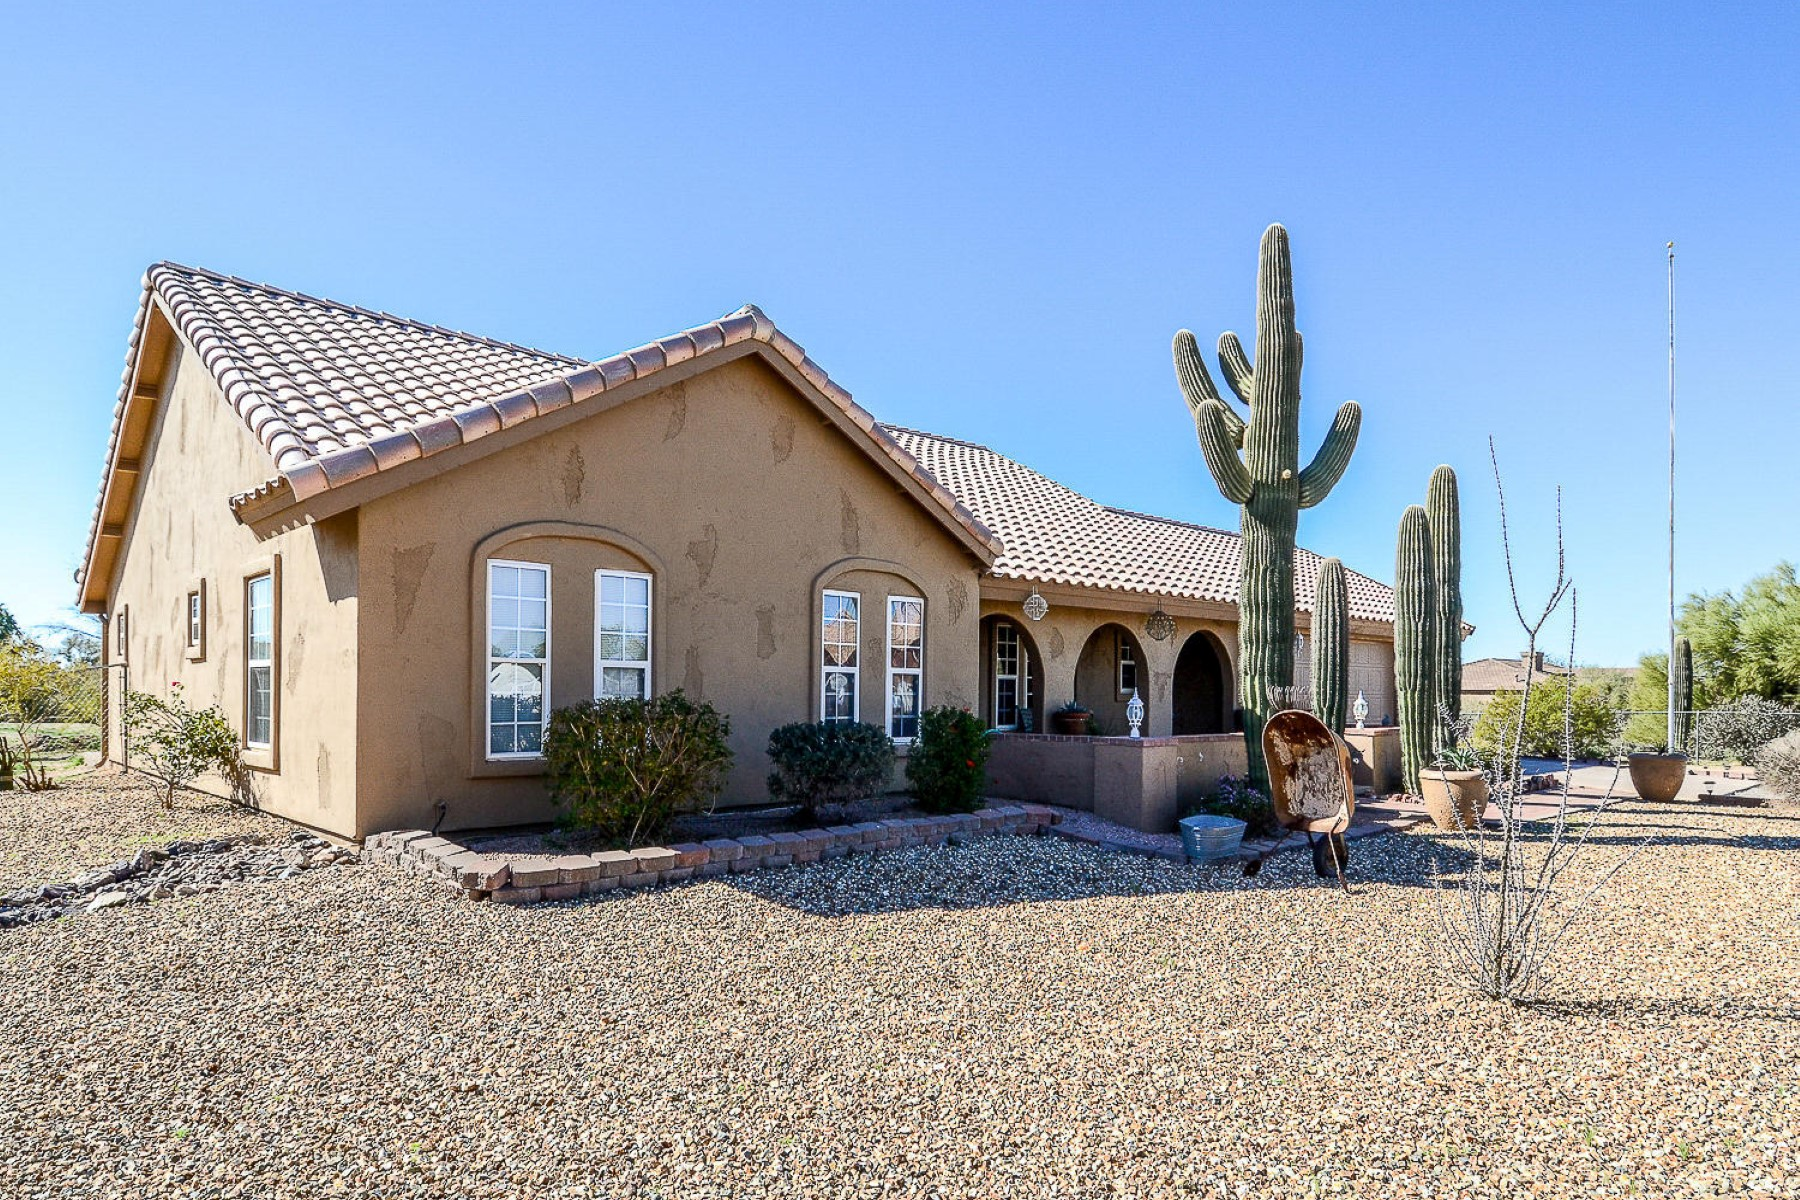 Single Family Home for Sale at Very nice well maintained Cave Creek home 5731 E Morning Vista Ln Cave Creek, Arizona, 85331 United States